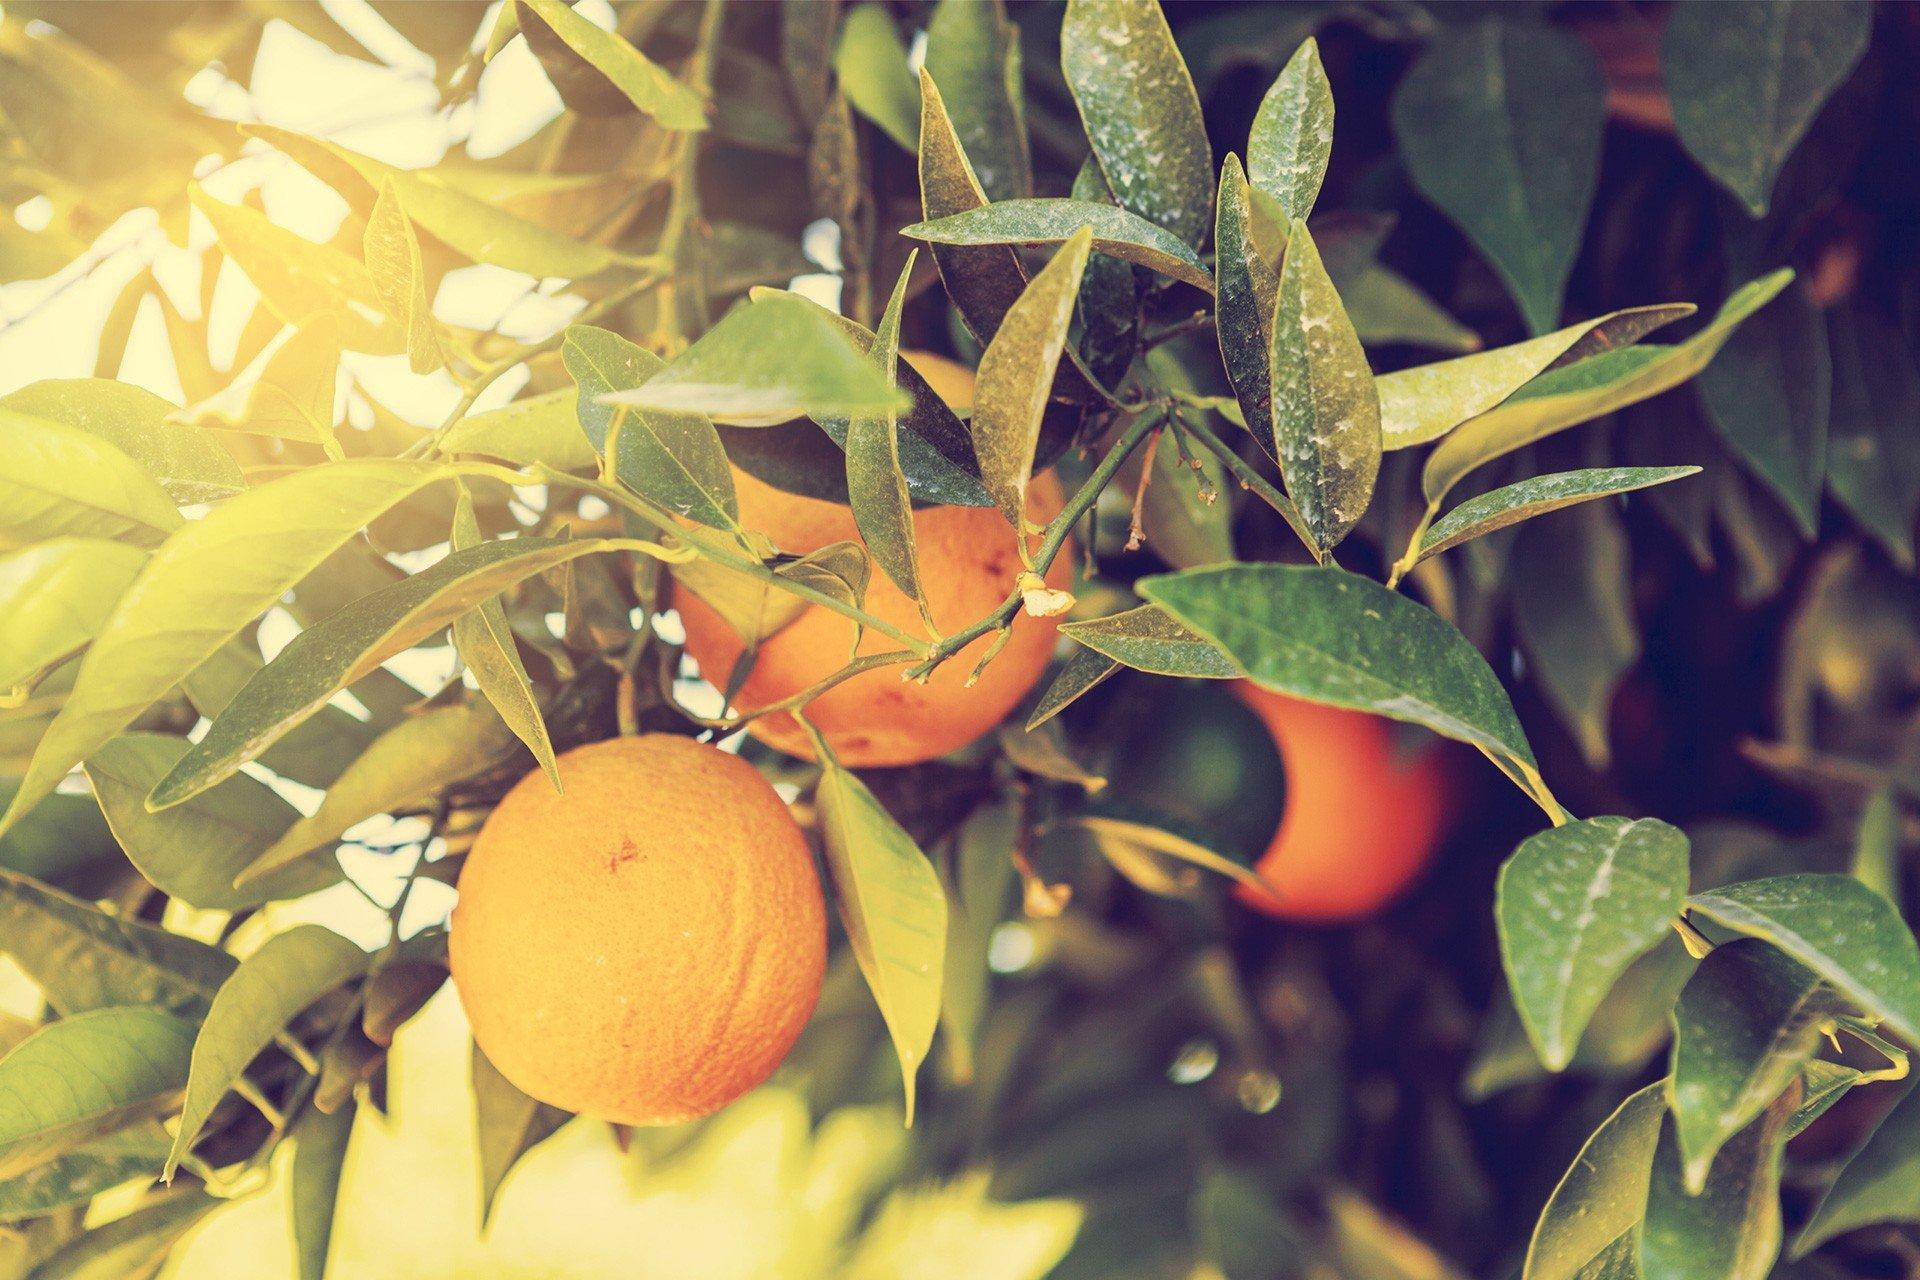 Citrus fruit growing in a tree